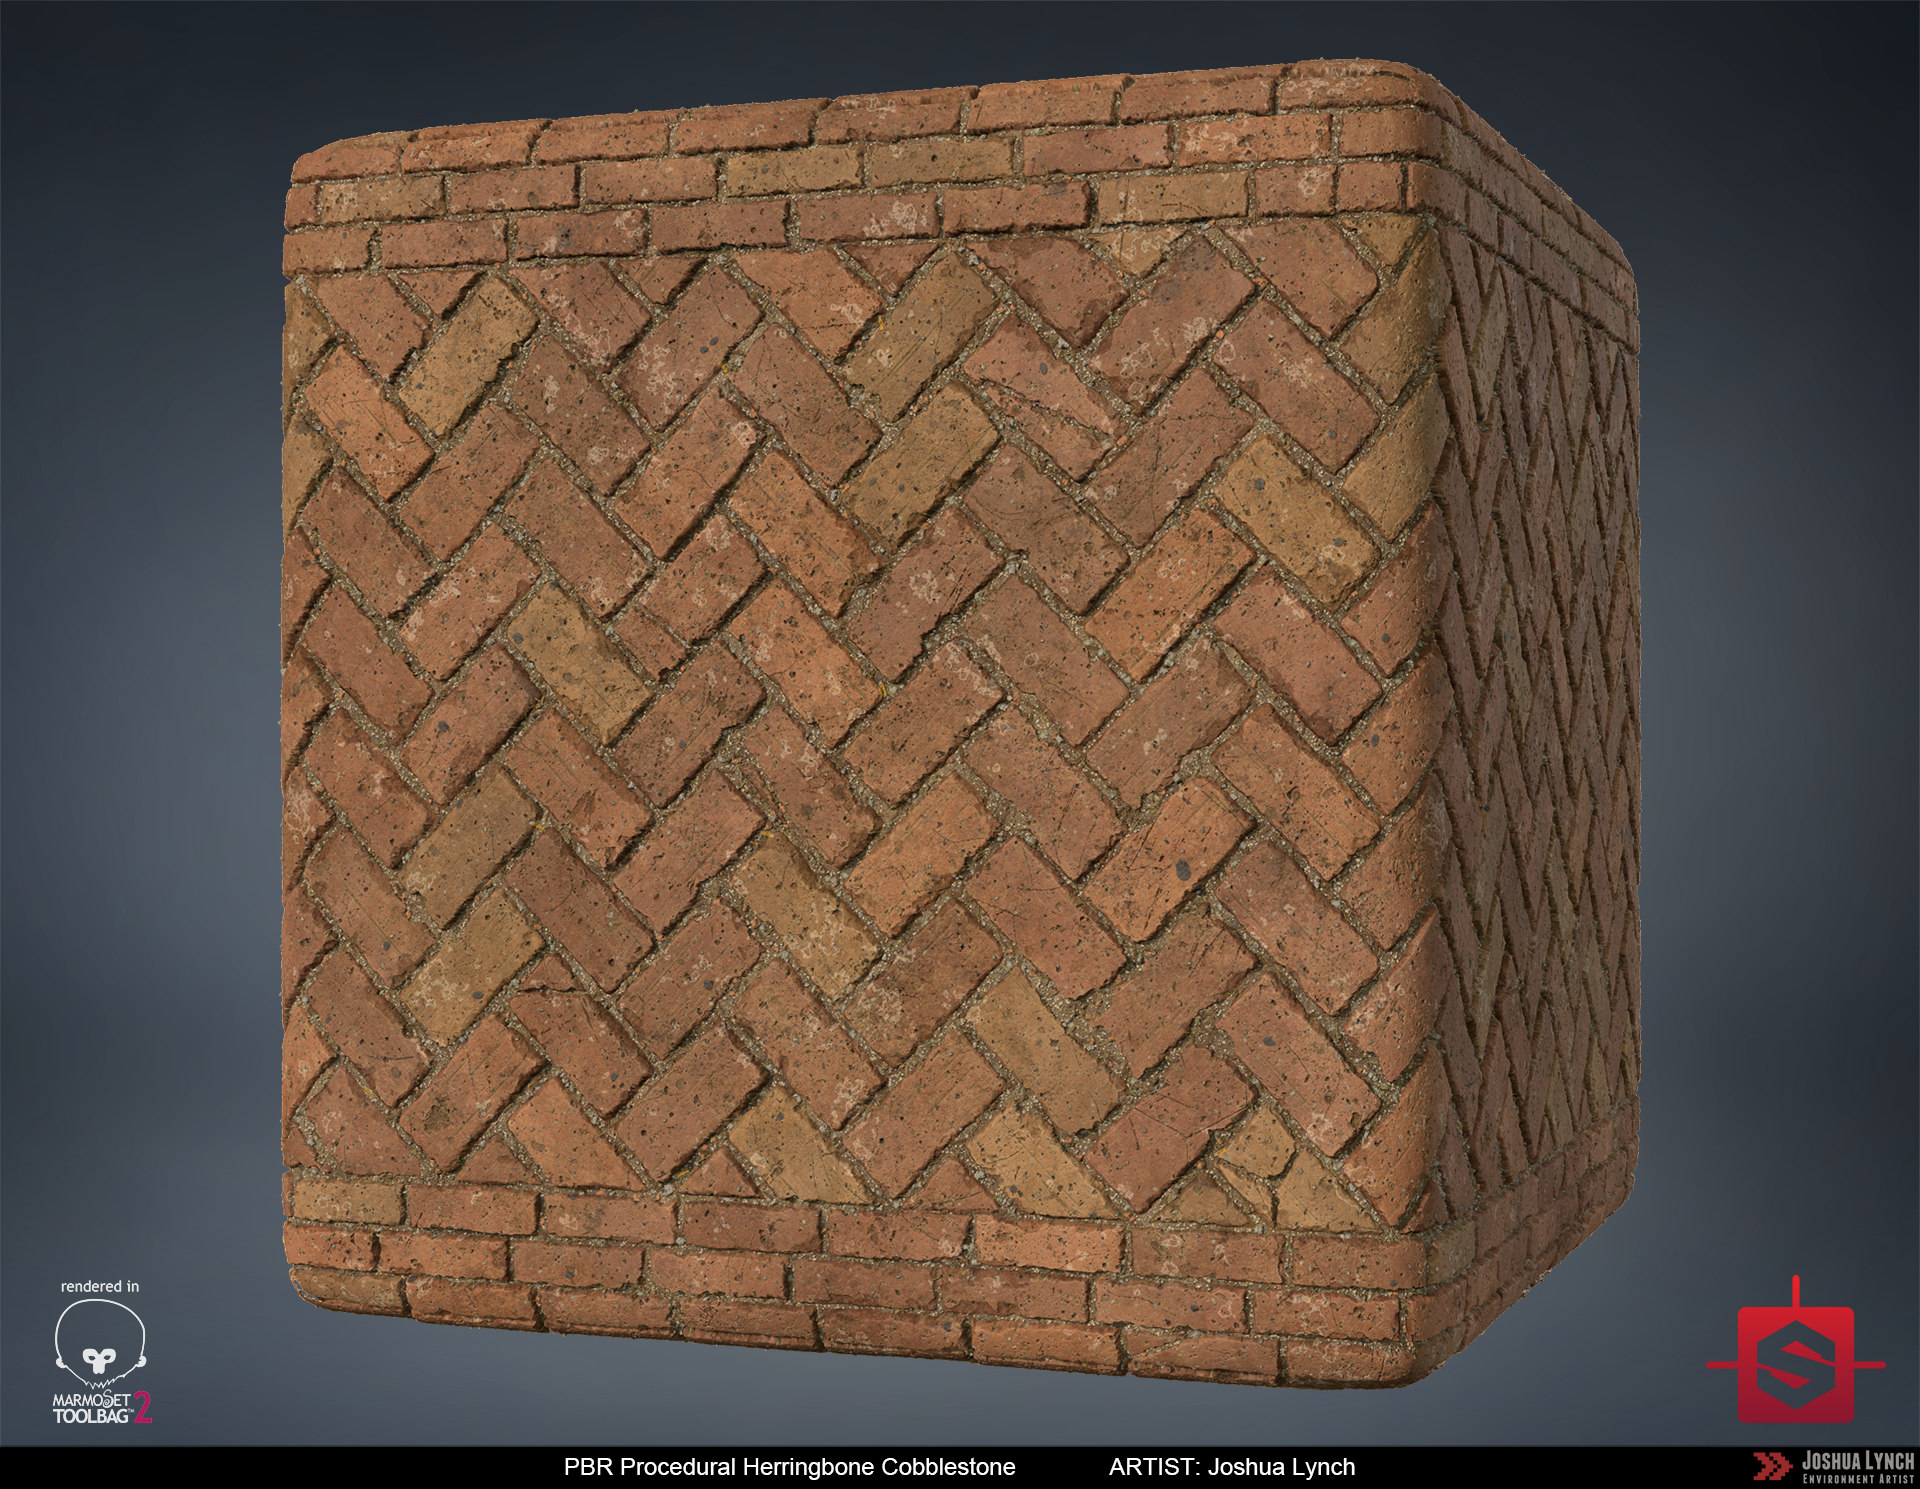 Floor_Cobblestone_Herringbone_Cube_Rev_05_Layout_Comp_Josh_Lynch.png